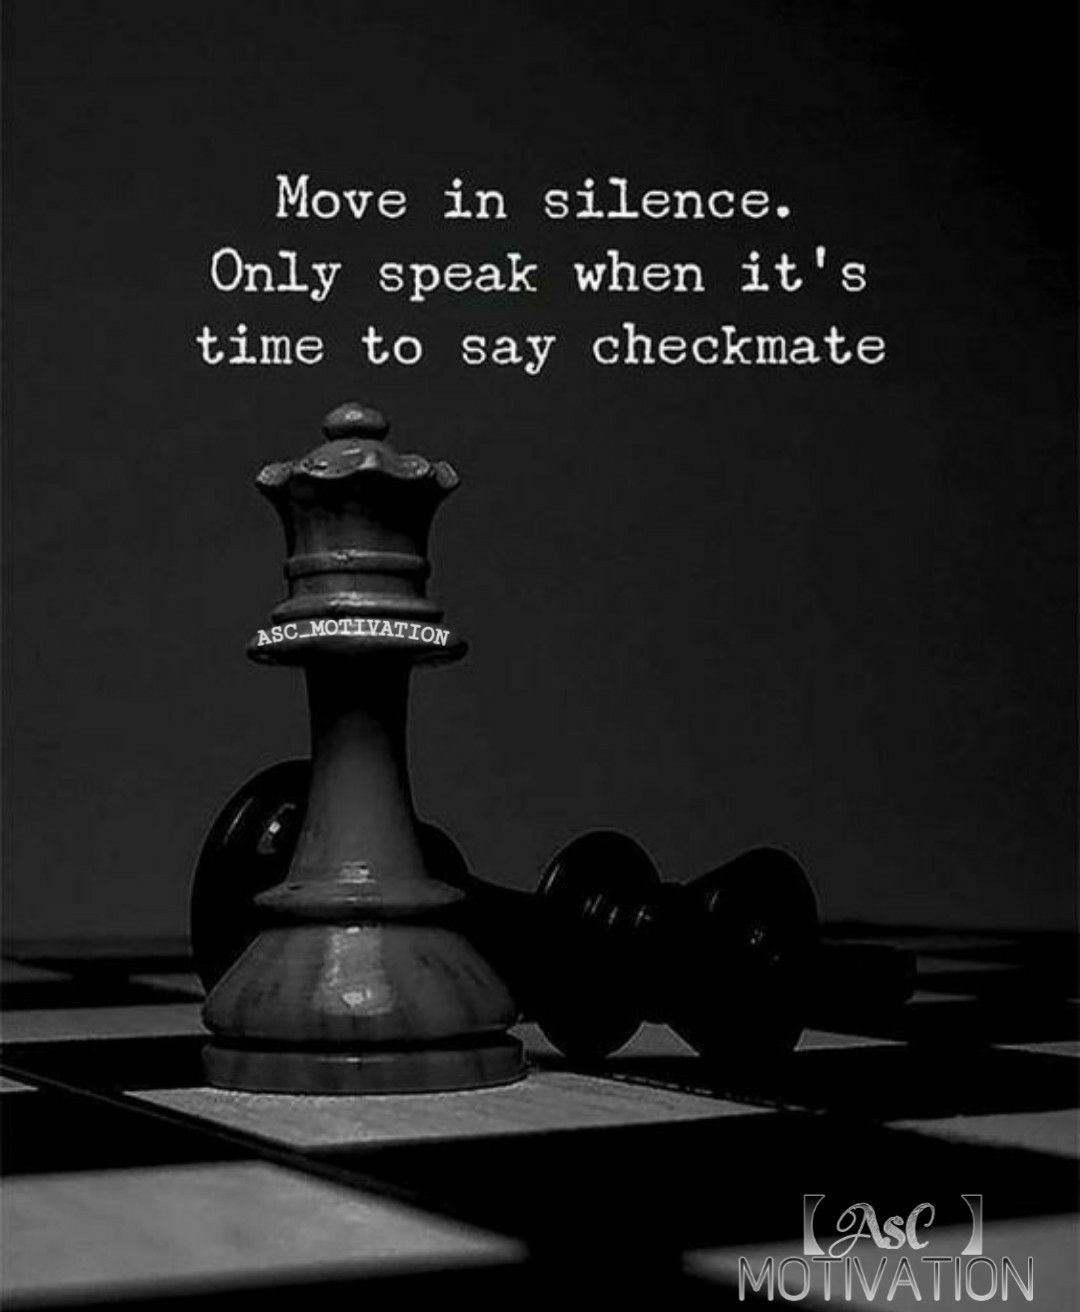 Making Moves In Silence Quotes : making, moves, silence, quotes, Never, Announce, Moves, Before, Making, Them., #silence, #speak, #checkmate, #announc…, Quotes, Inspirational, Positive,, Inspiring, About, Life,, Positive